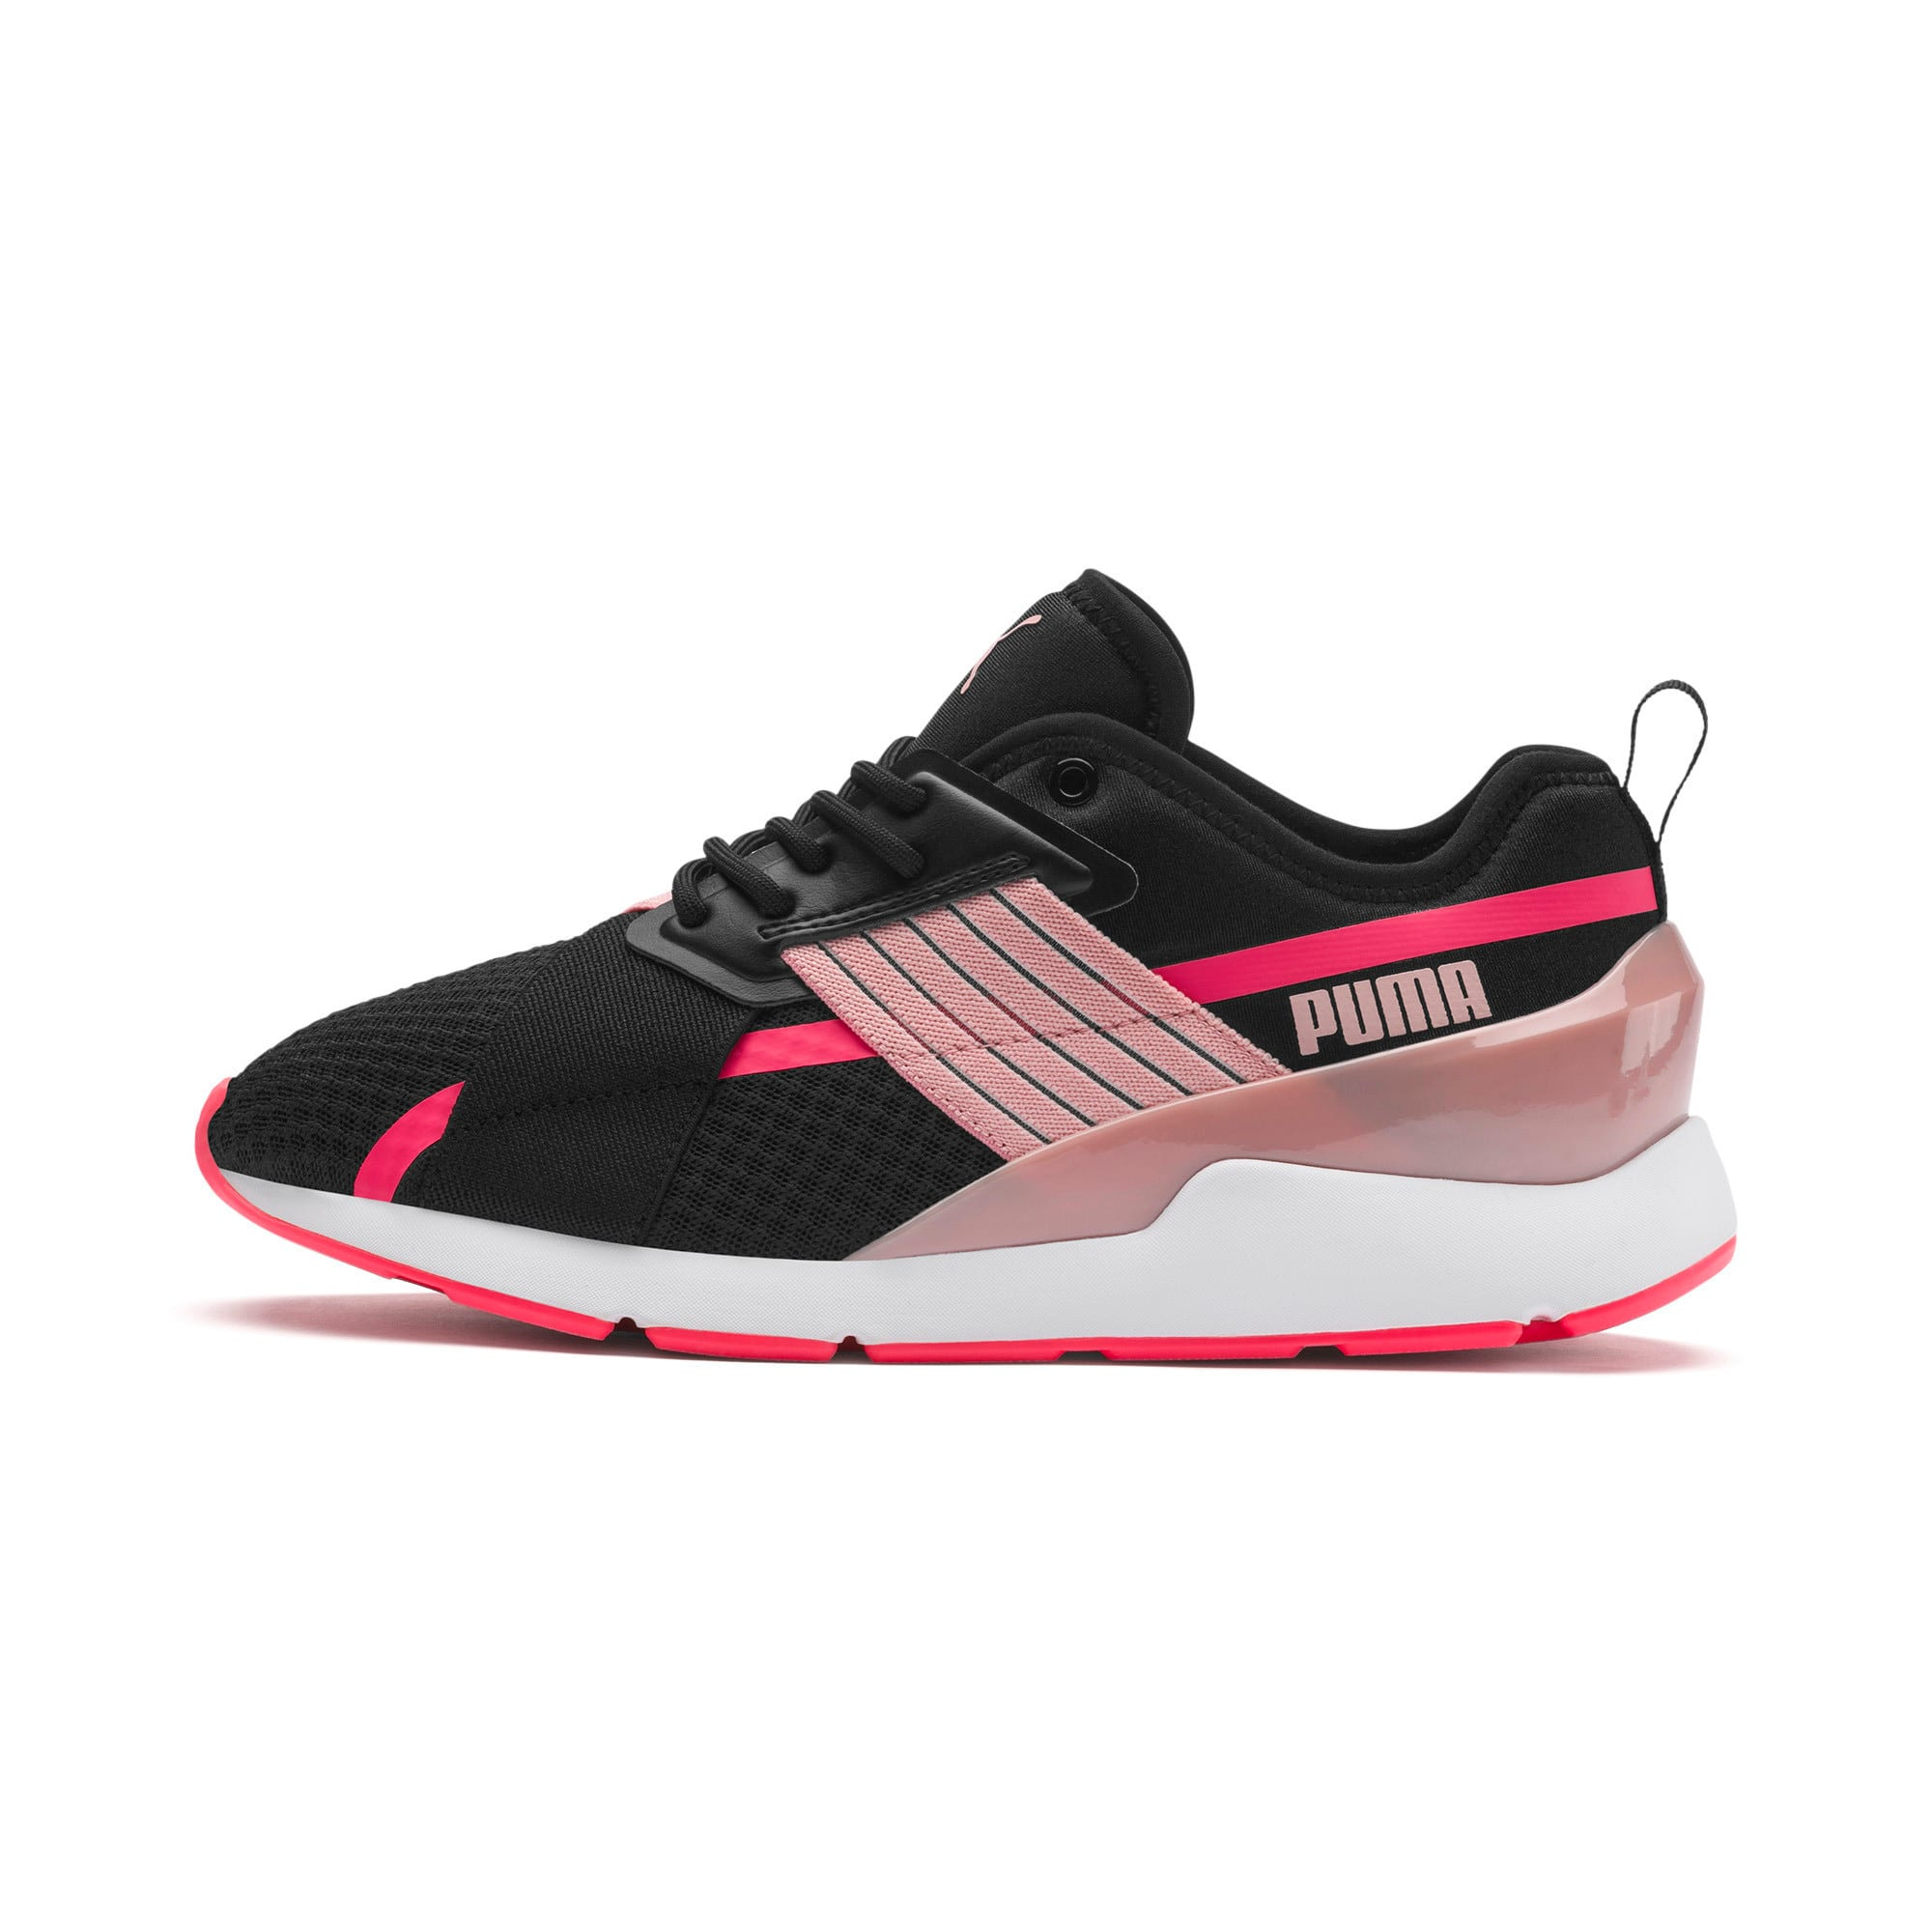 Thumbnail 1 of Muse X-2 Women's Sneakers, Puma Black-Bridal Rose, medium